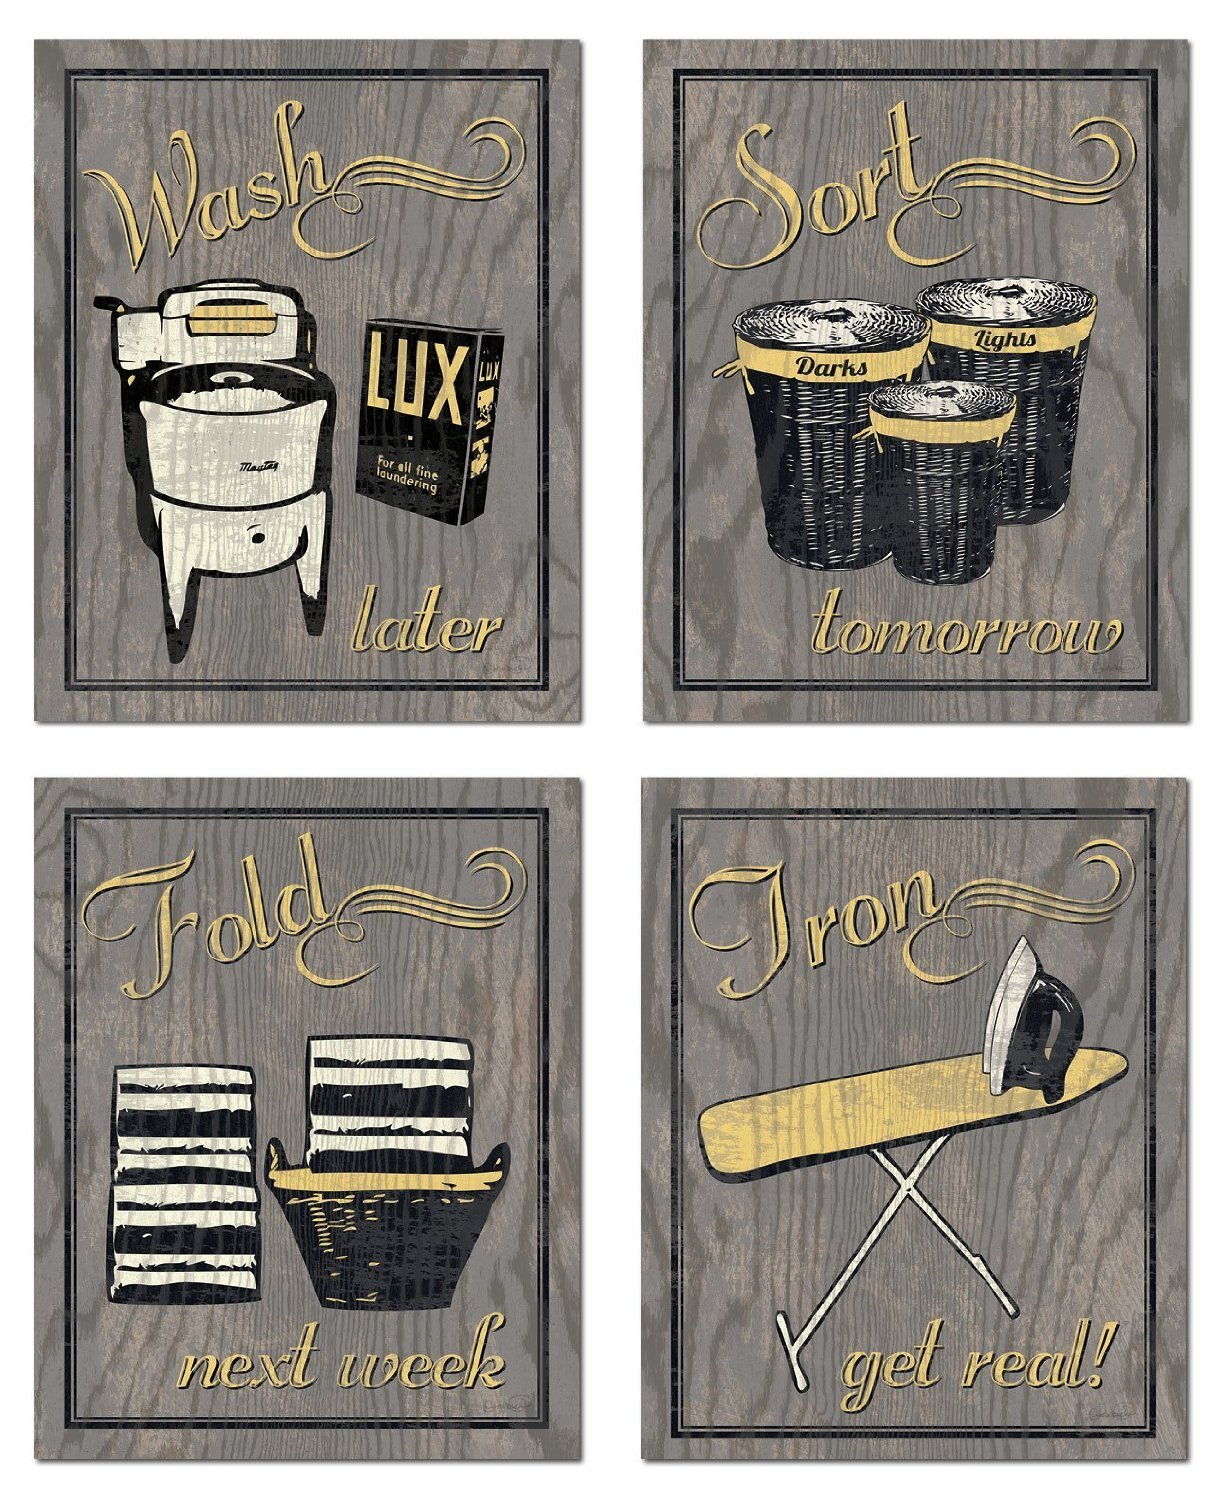 Trendy & Extremely Popular Humorous Laundry Room Wash Sort Fold Iron Set; Four 8x10in Poster Prints. Grey/Yellow (Printed on Paper, not wood)